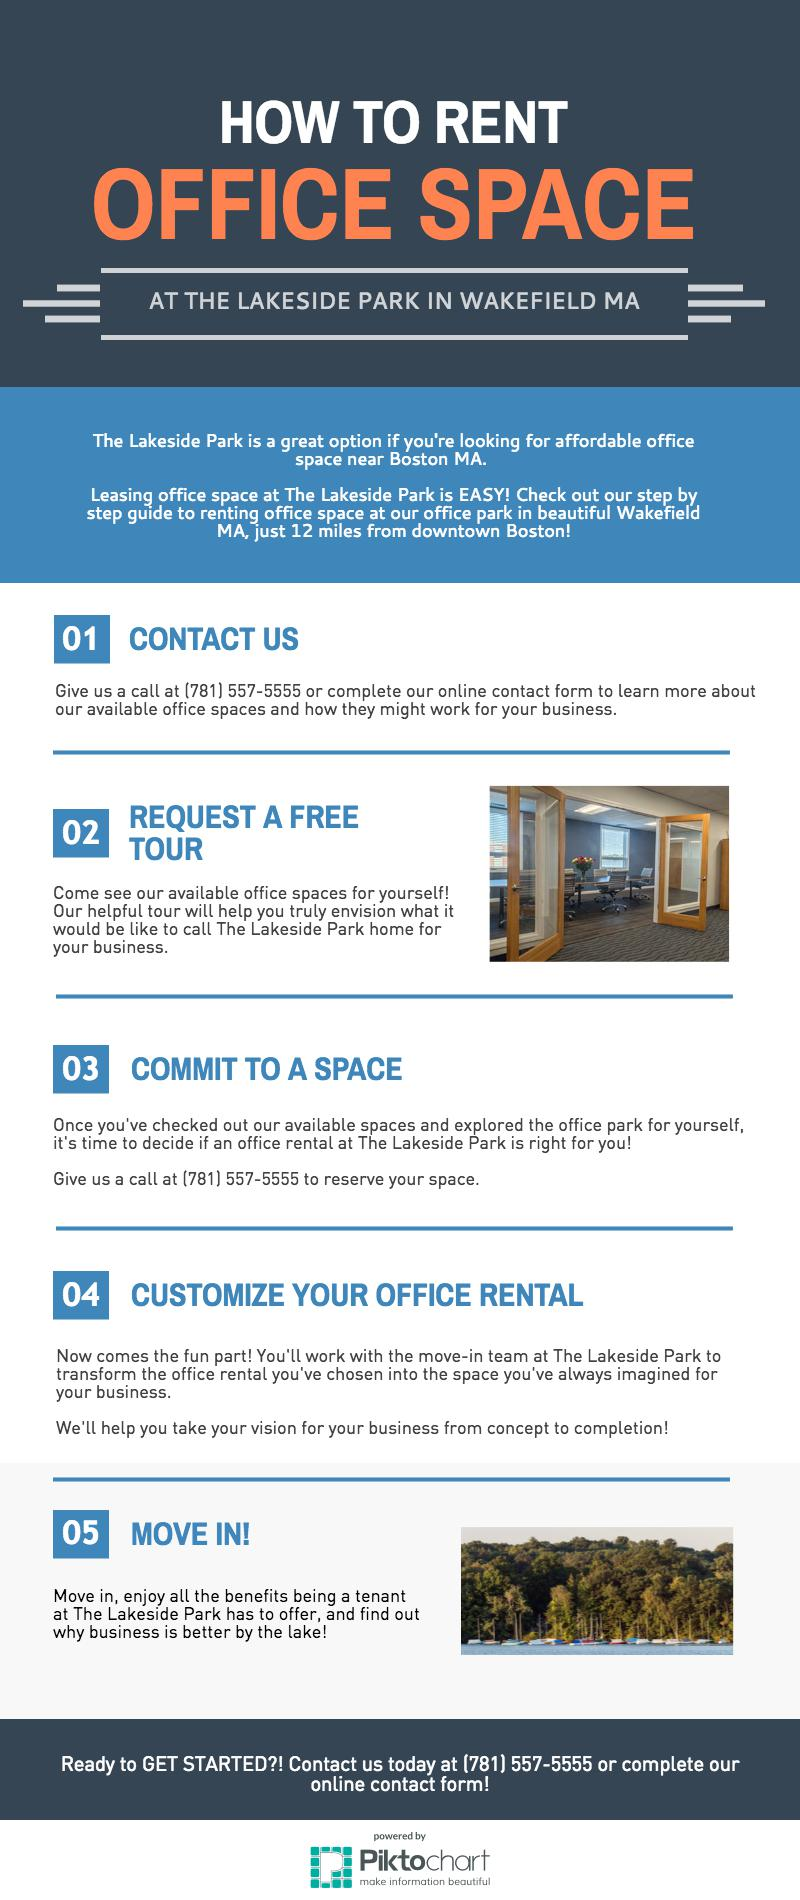 Guide to Renting Office Space Near Boston at The Lakeside Park in Wakefield MA